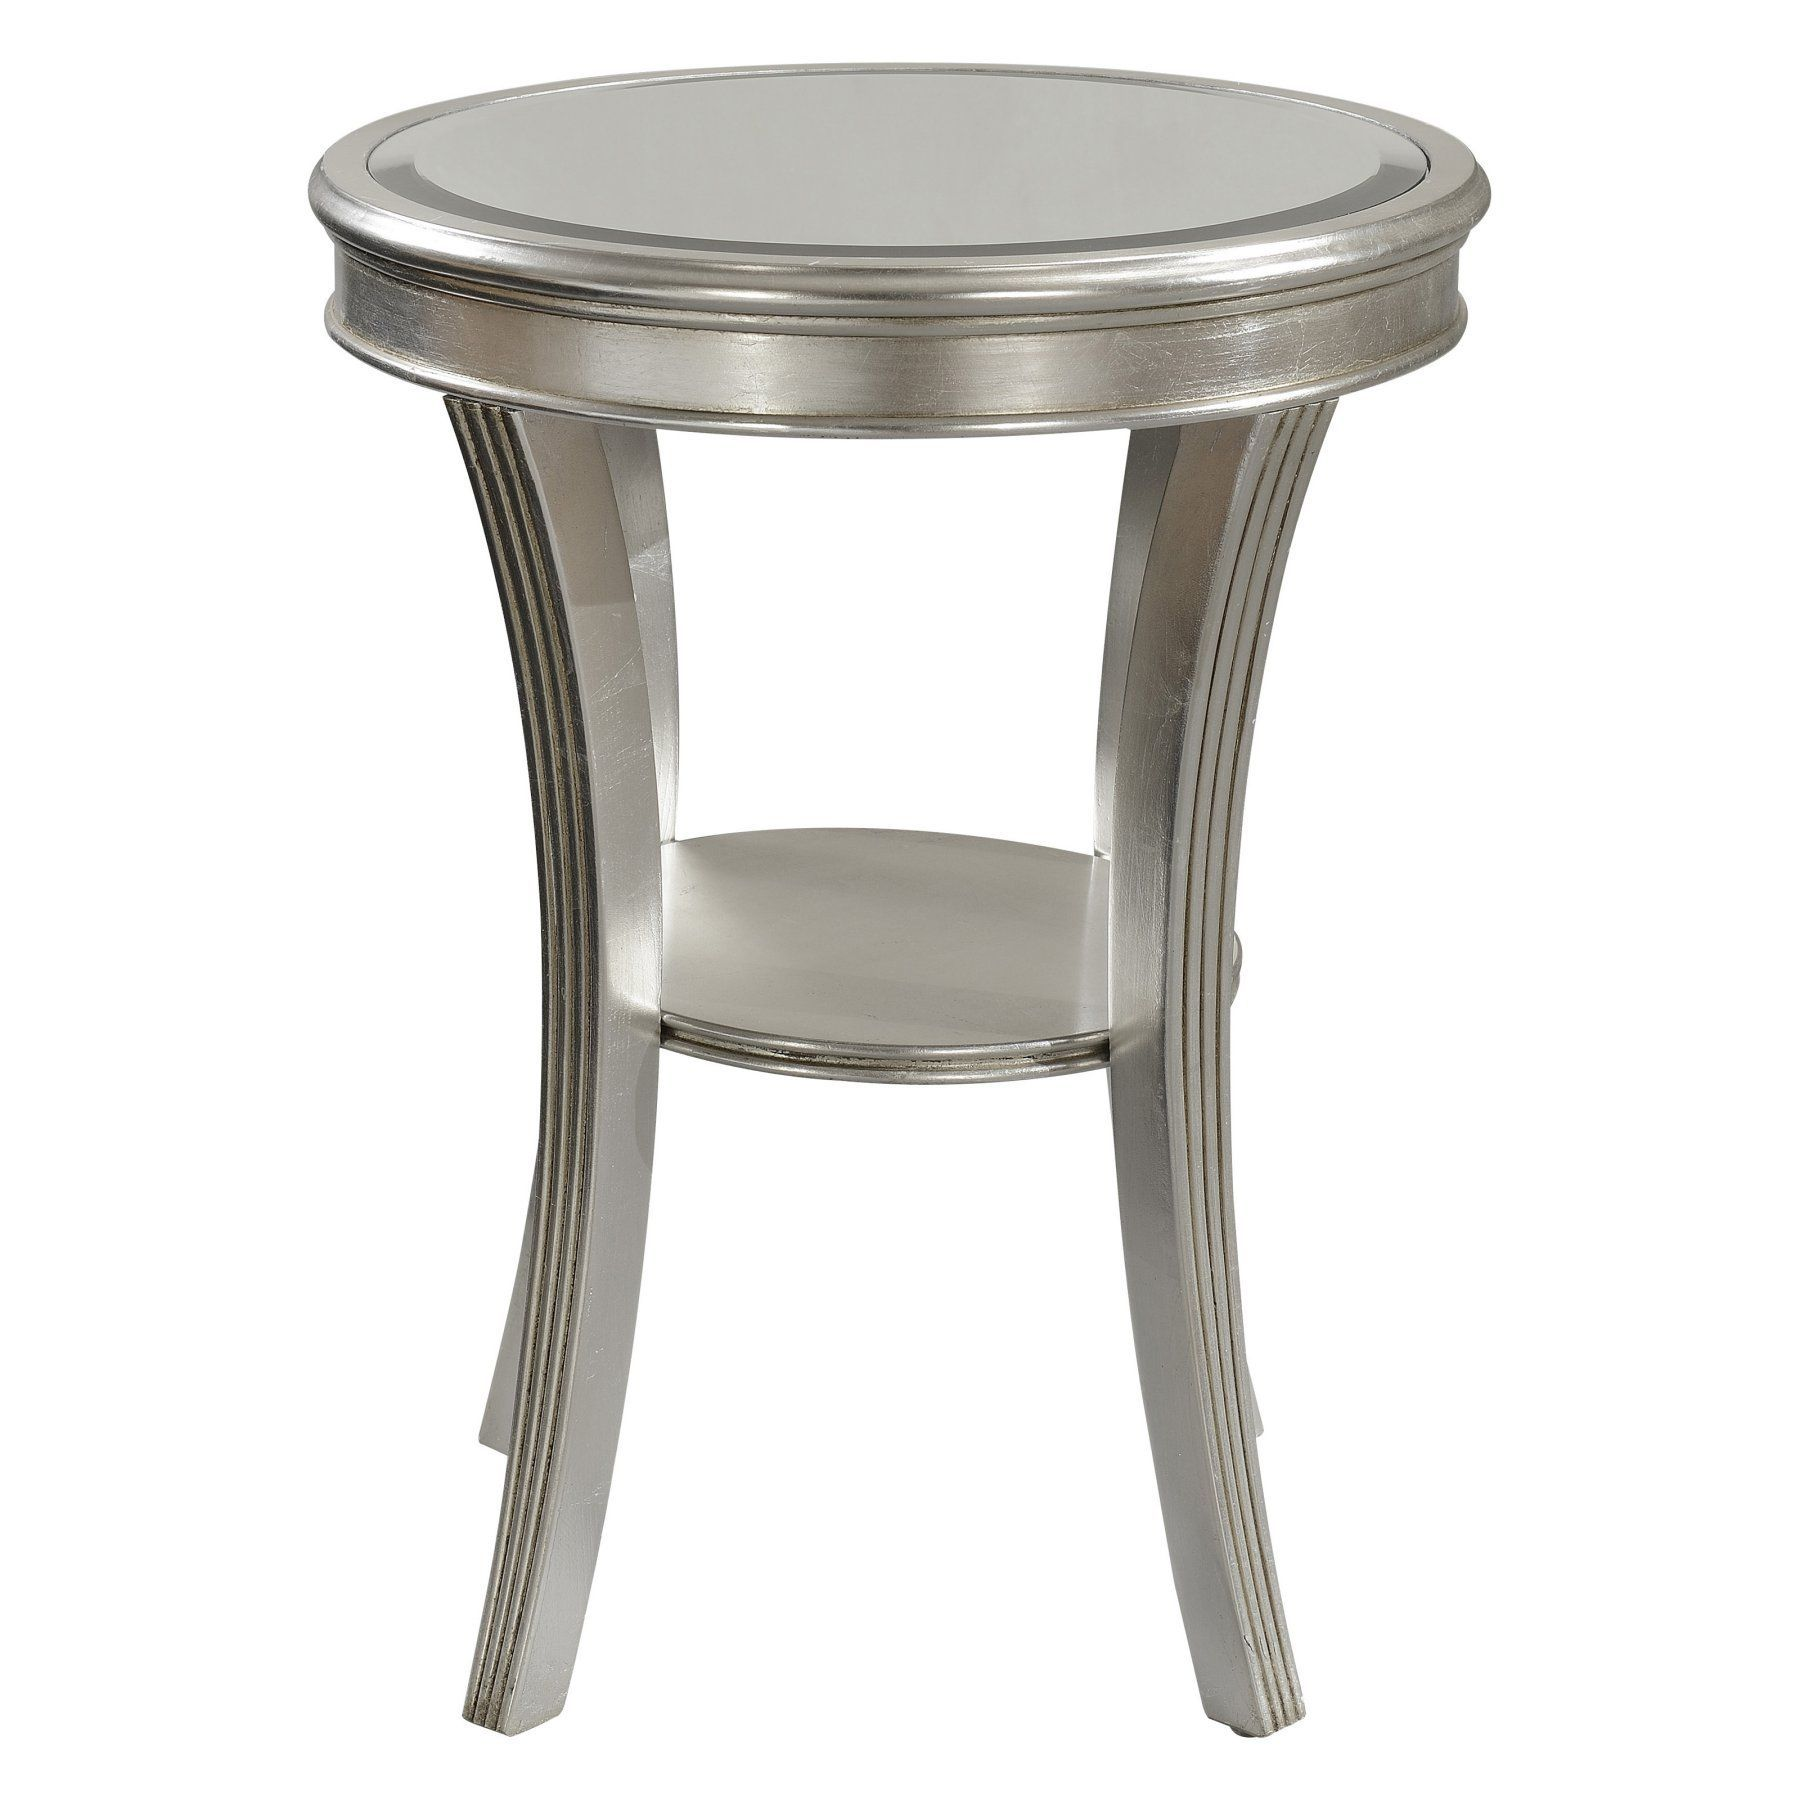 coast mirror top accent table products tables with matching mirrors kirklands lamps circle chair target front entry patio umbrella nate berkus sheets semi coffee nightstand glass